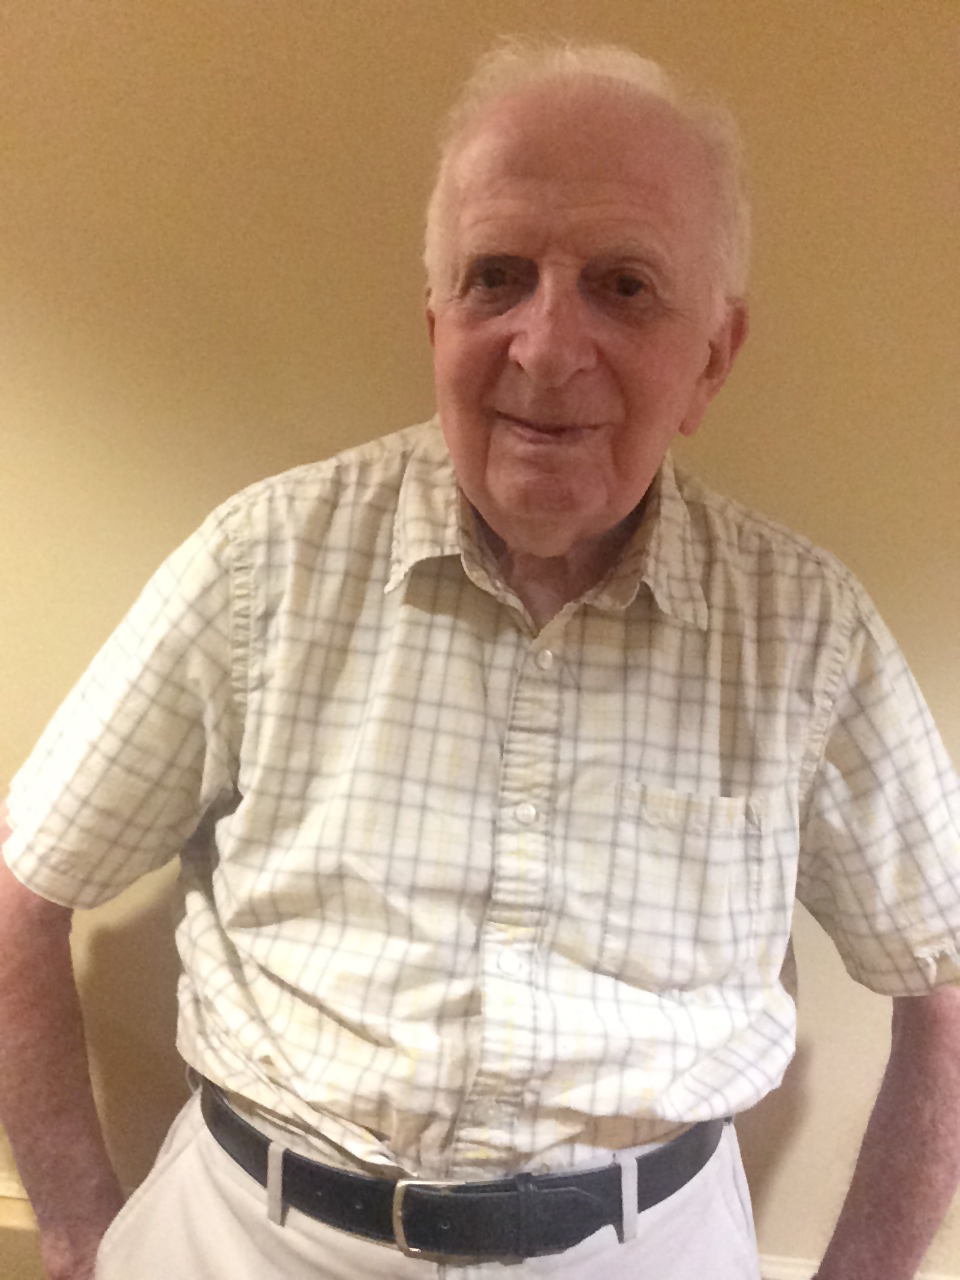 At 96 years of age, Bob Mercer still vividly remembers the fatal explosion of November 18, 1941 at the plant where he worked in Nobel, Ontario. As an explosives expert during the Second World War, Mercer went on to build a 40-year career in the development, regulation and transportation of high explosives for the Canadian explosives industry.